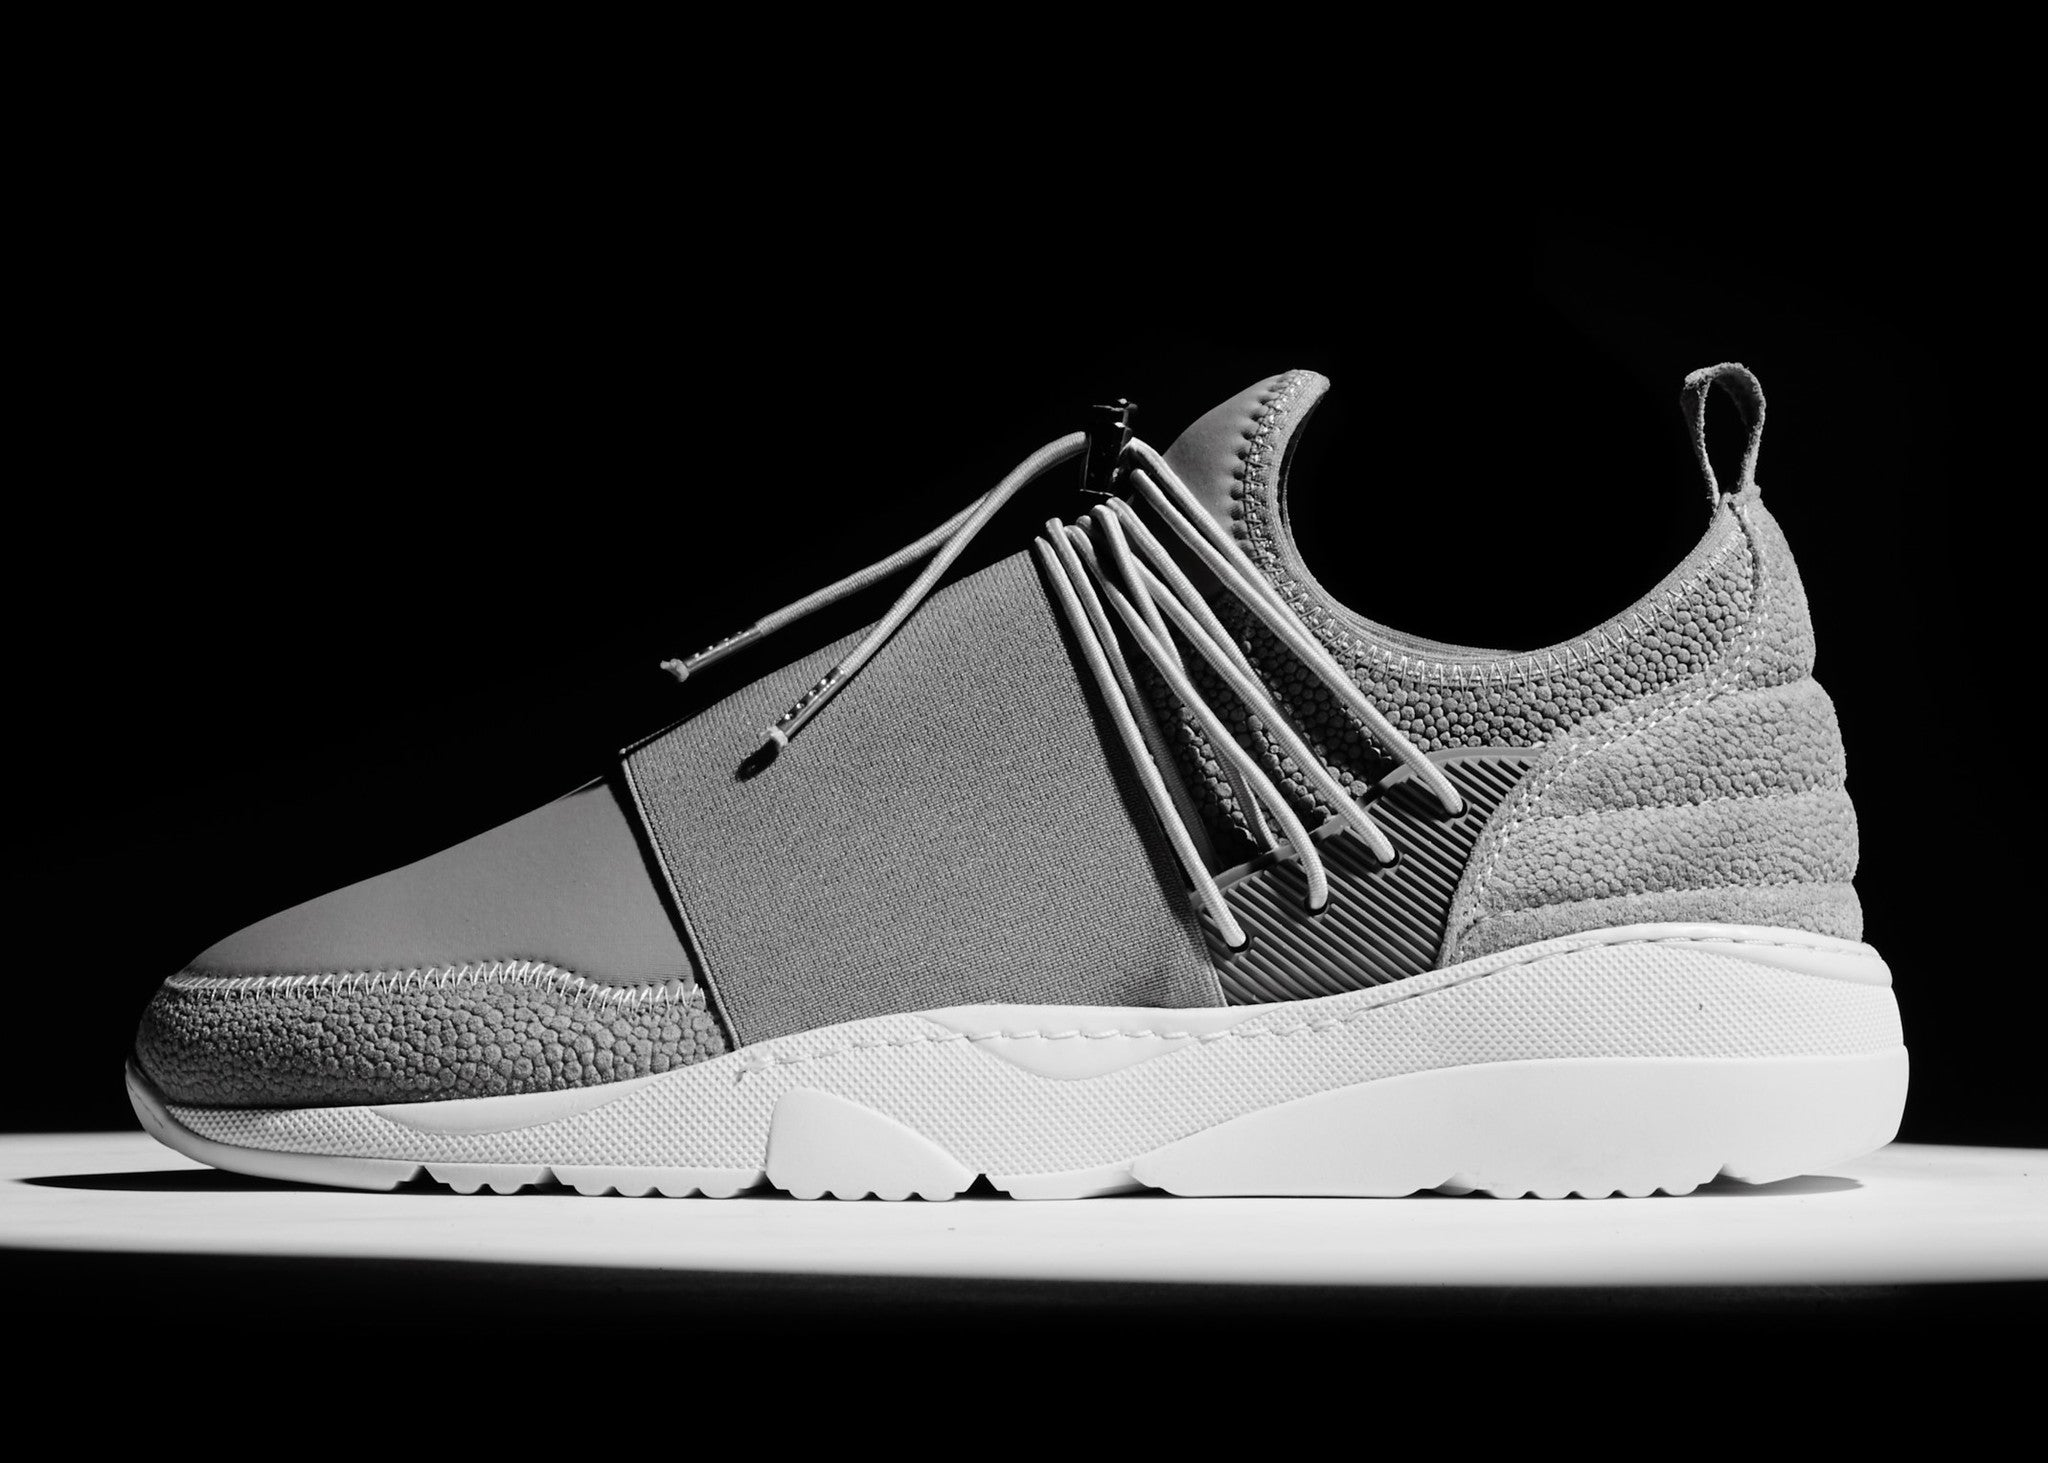 RUNNER 3.0 LOW FUSE - GREY / WHITE